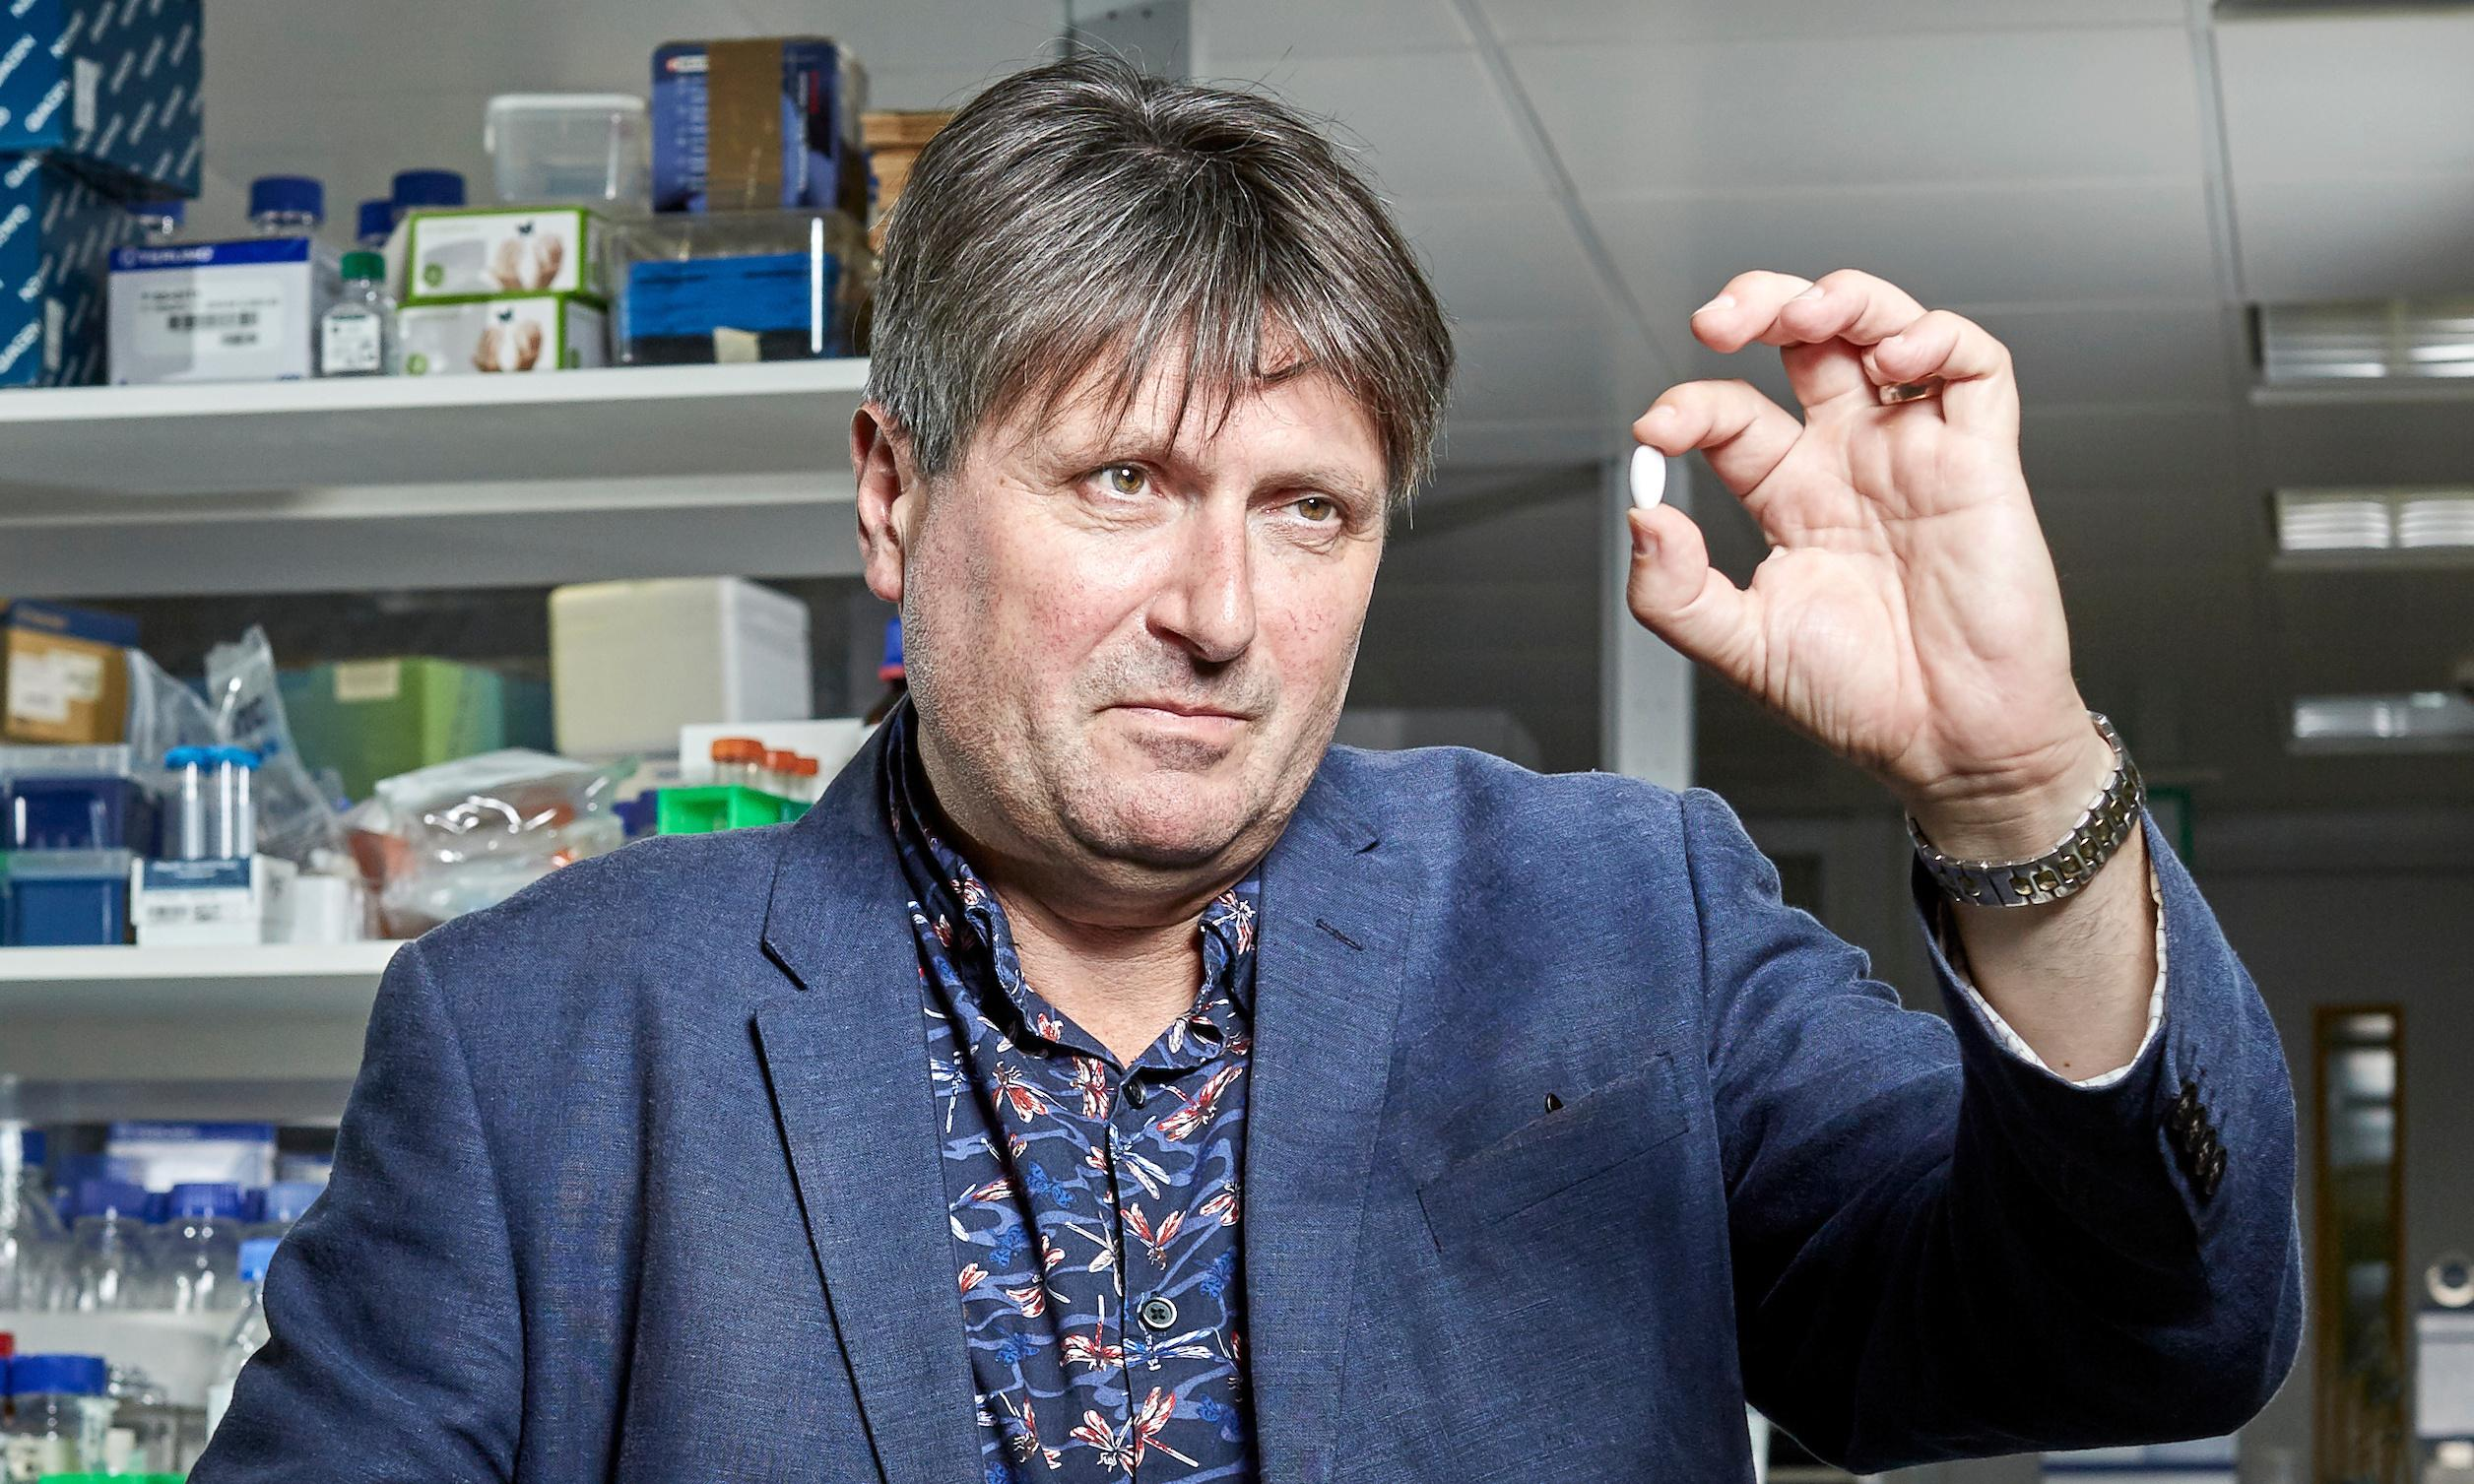 Taking a stanza: Simon Armitage cancer poem engraved on a pill